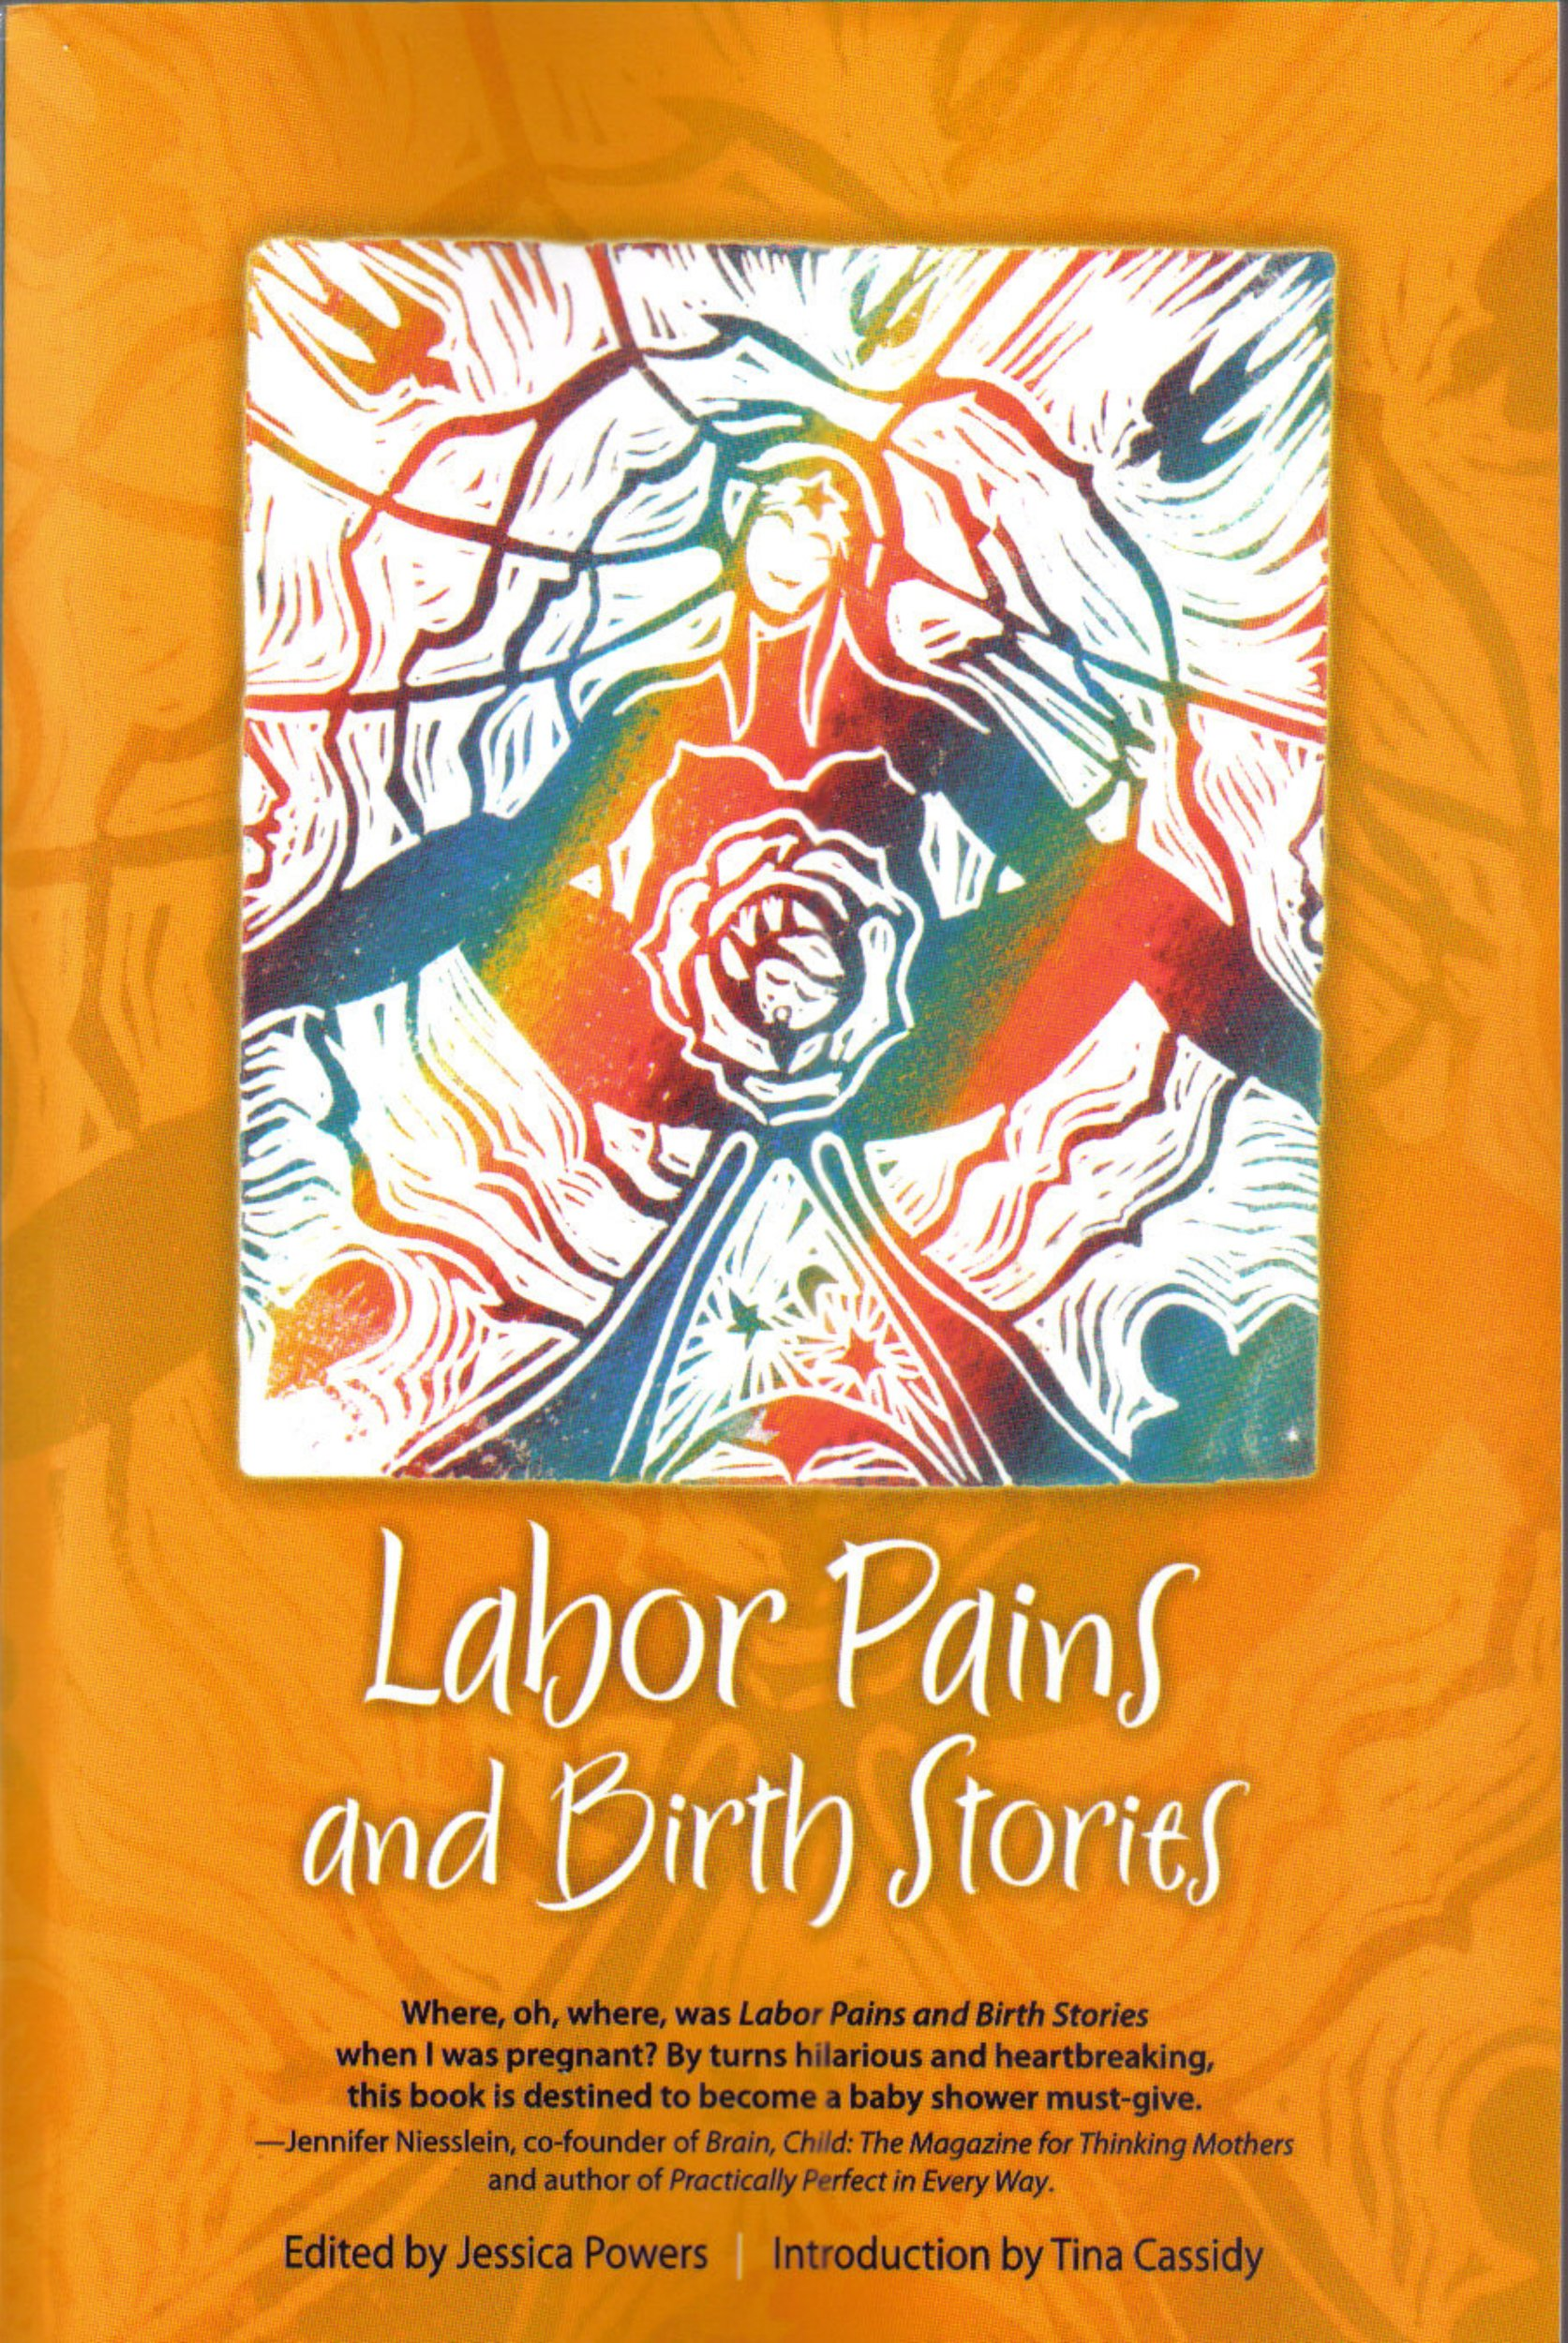 labor pains and birth stories essays on pregnancy childbirth labor pains and birth stories essays on pregnancy childbirth and becoming a parent jessica powers 9780980208115 amazon com books